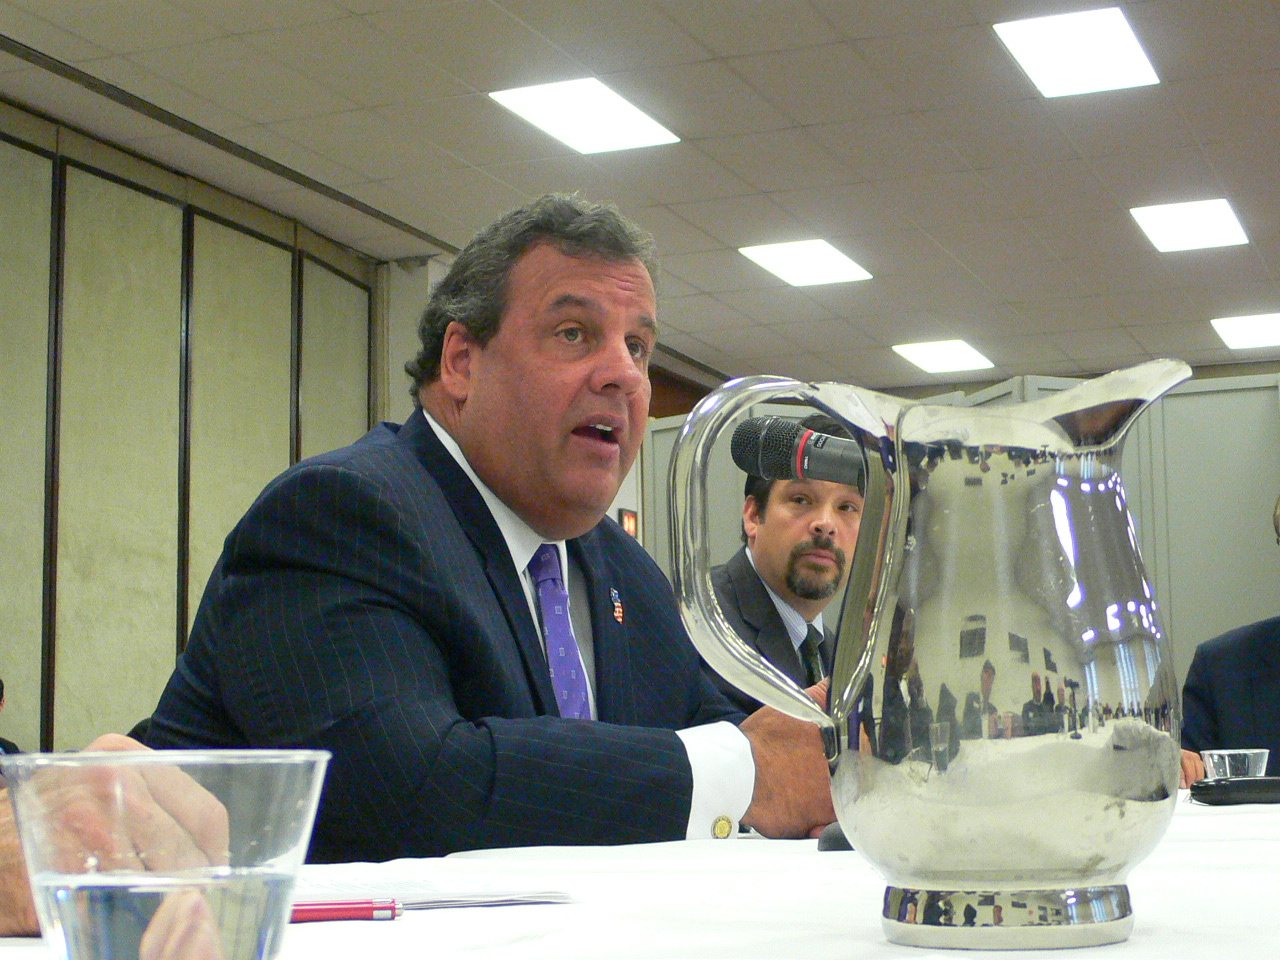 2013-12-03 Christie Meeting 3